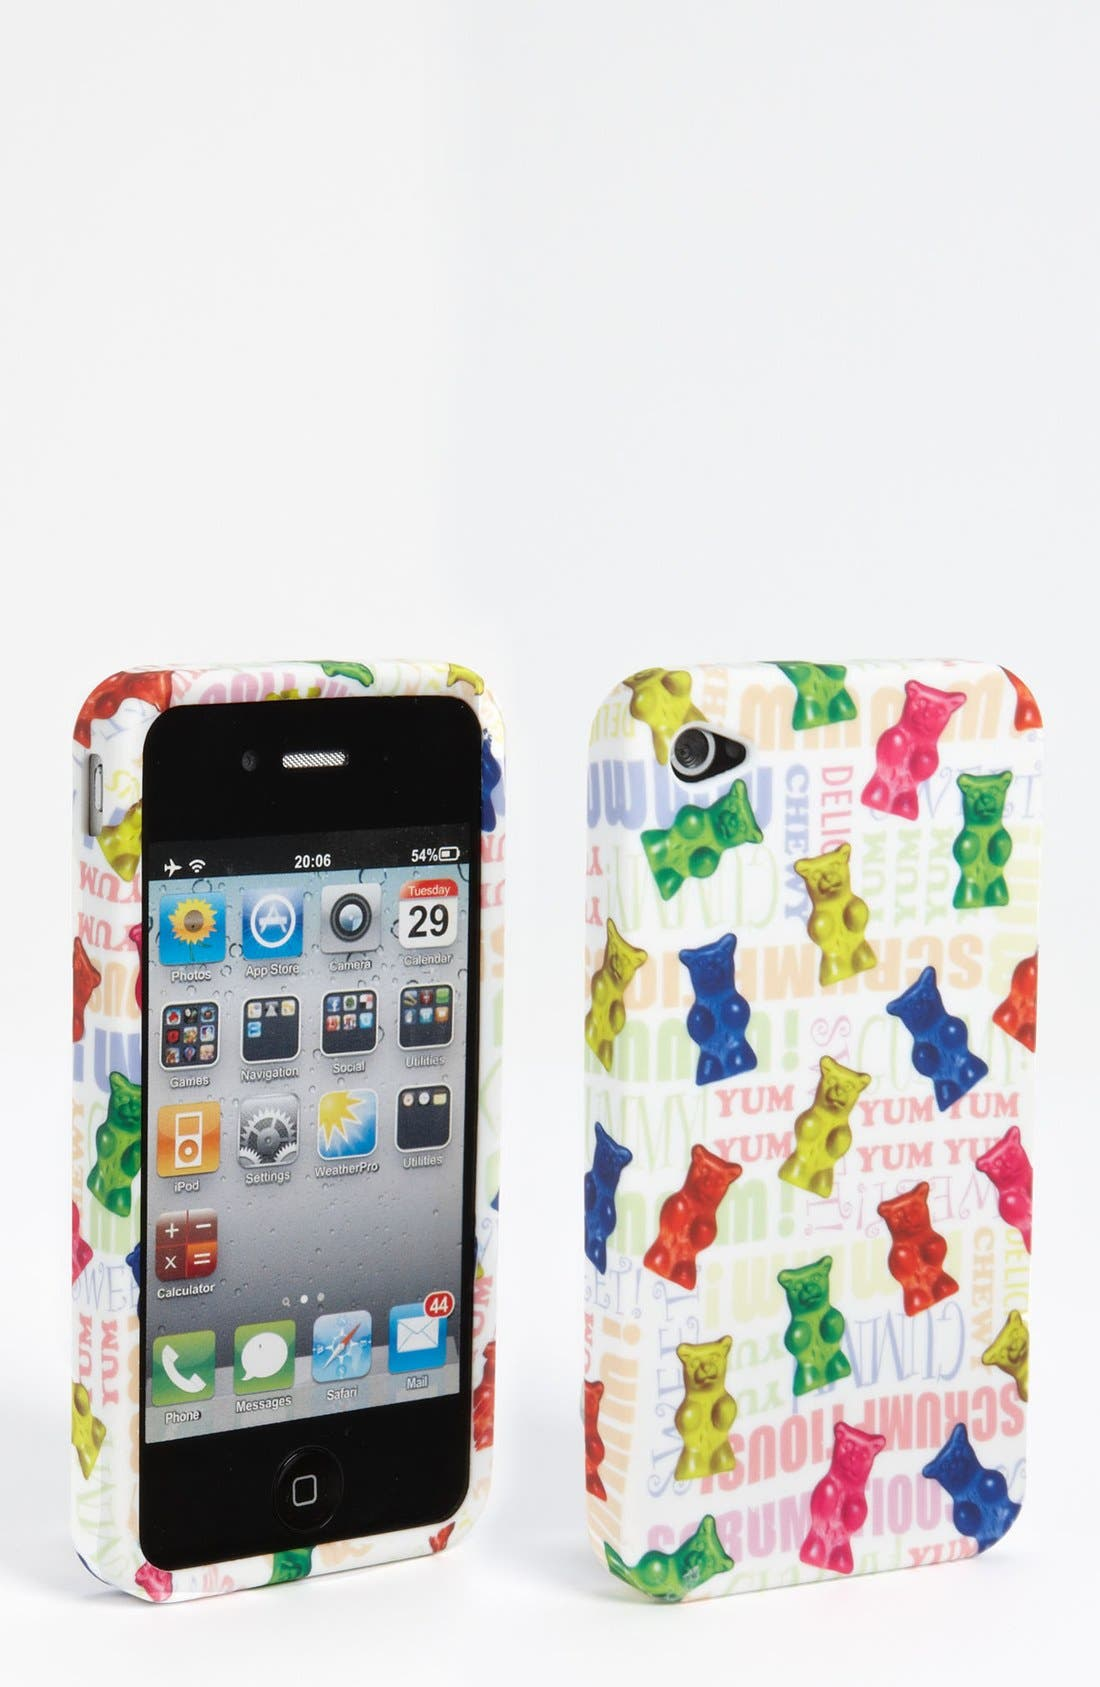 Alternate Image 1 Selected - Iscream 'Gummy Bear' iPhone 4 & 4S Case (Girls)